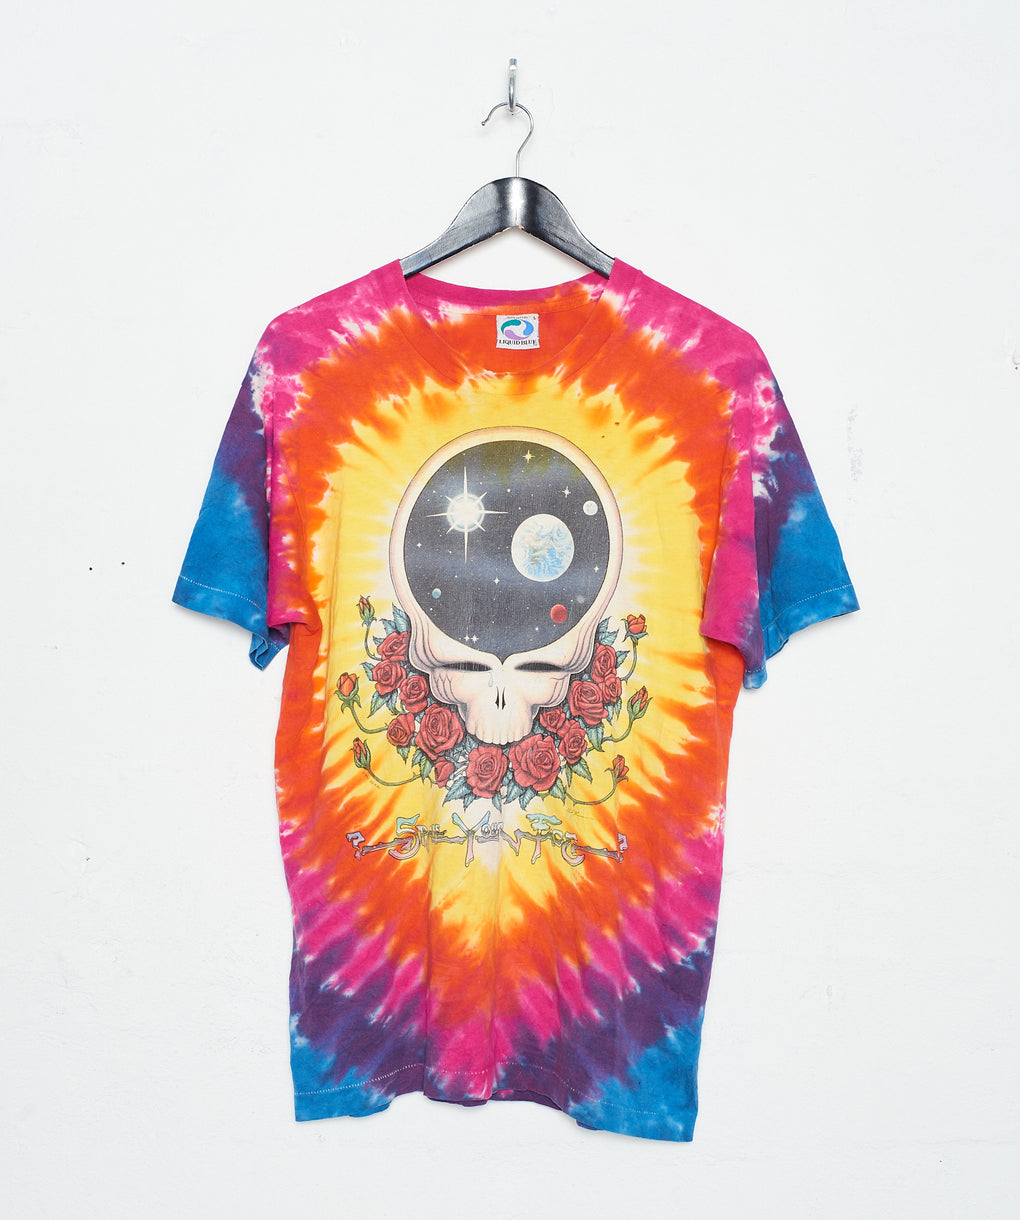 1992 Grateful Dead 'Space Your Face' Tie Dye - FROTHLYF